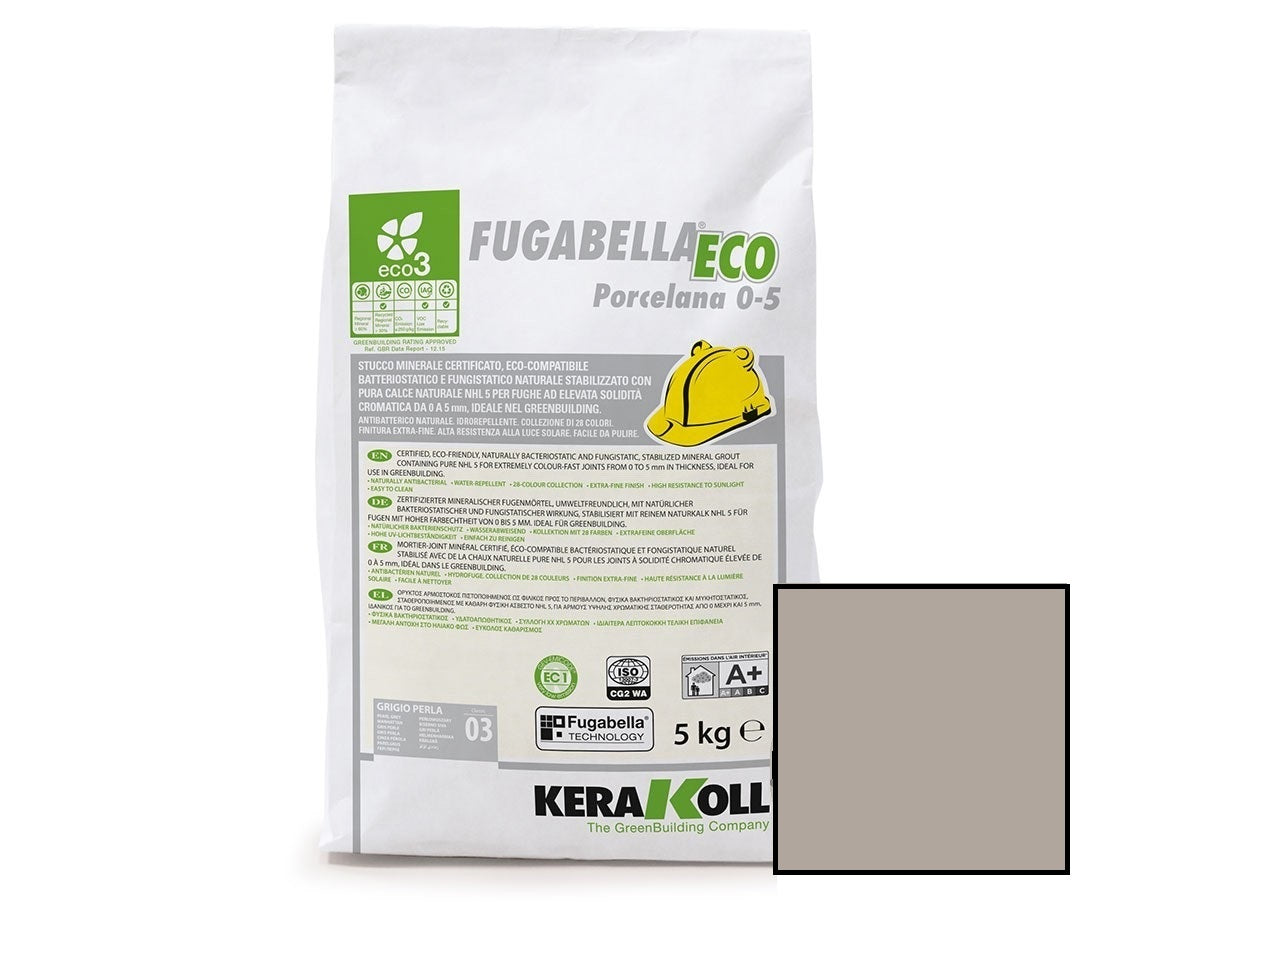 Kerakoll Fugabella Eco Flexible Grout Dove Grey 5kg